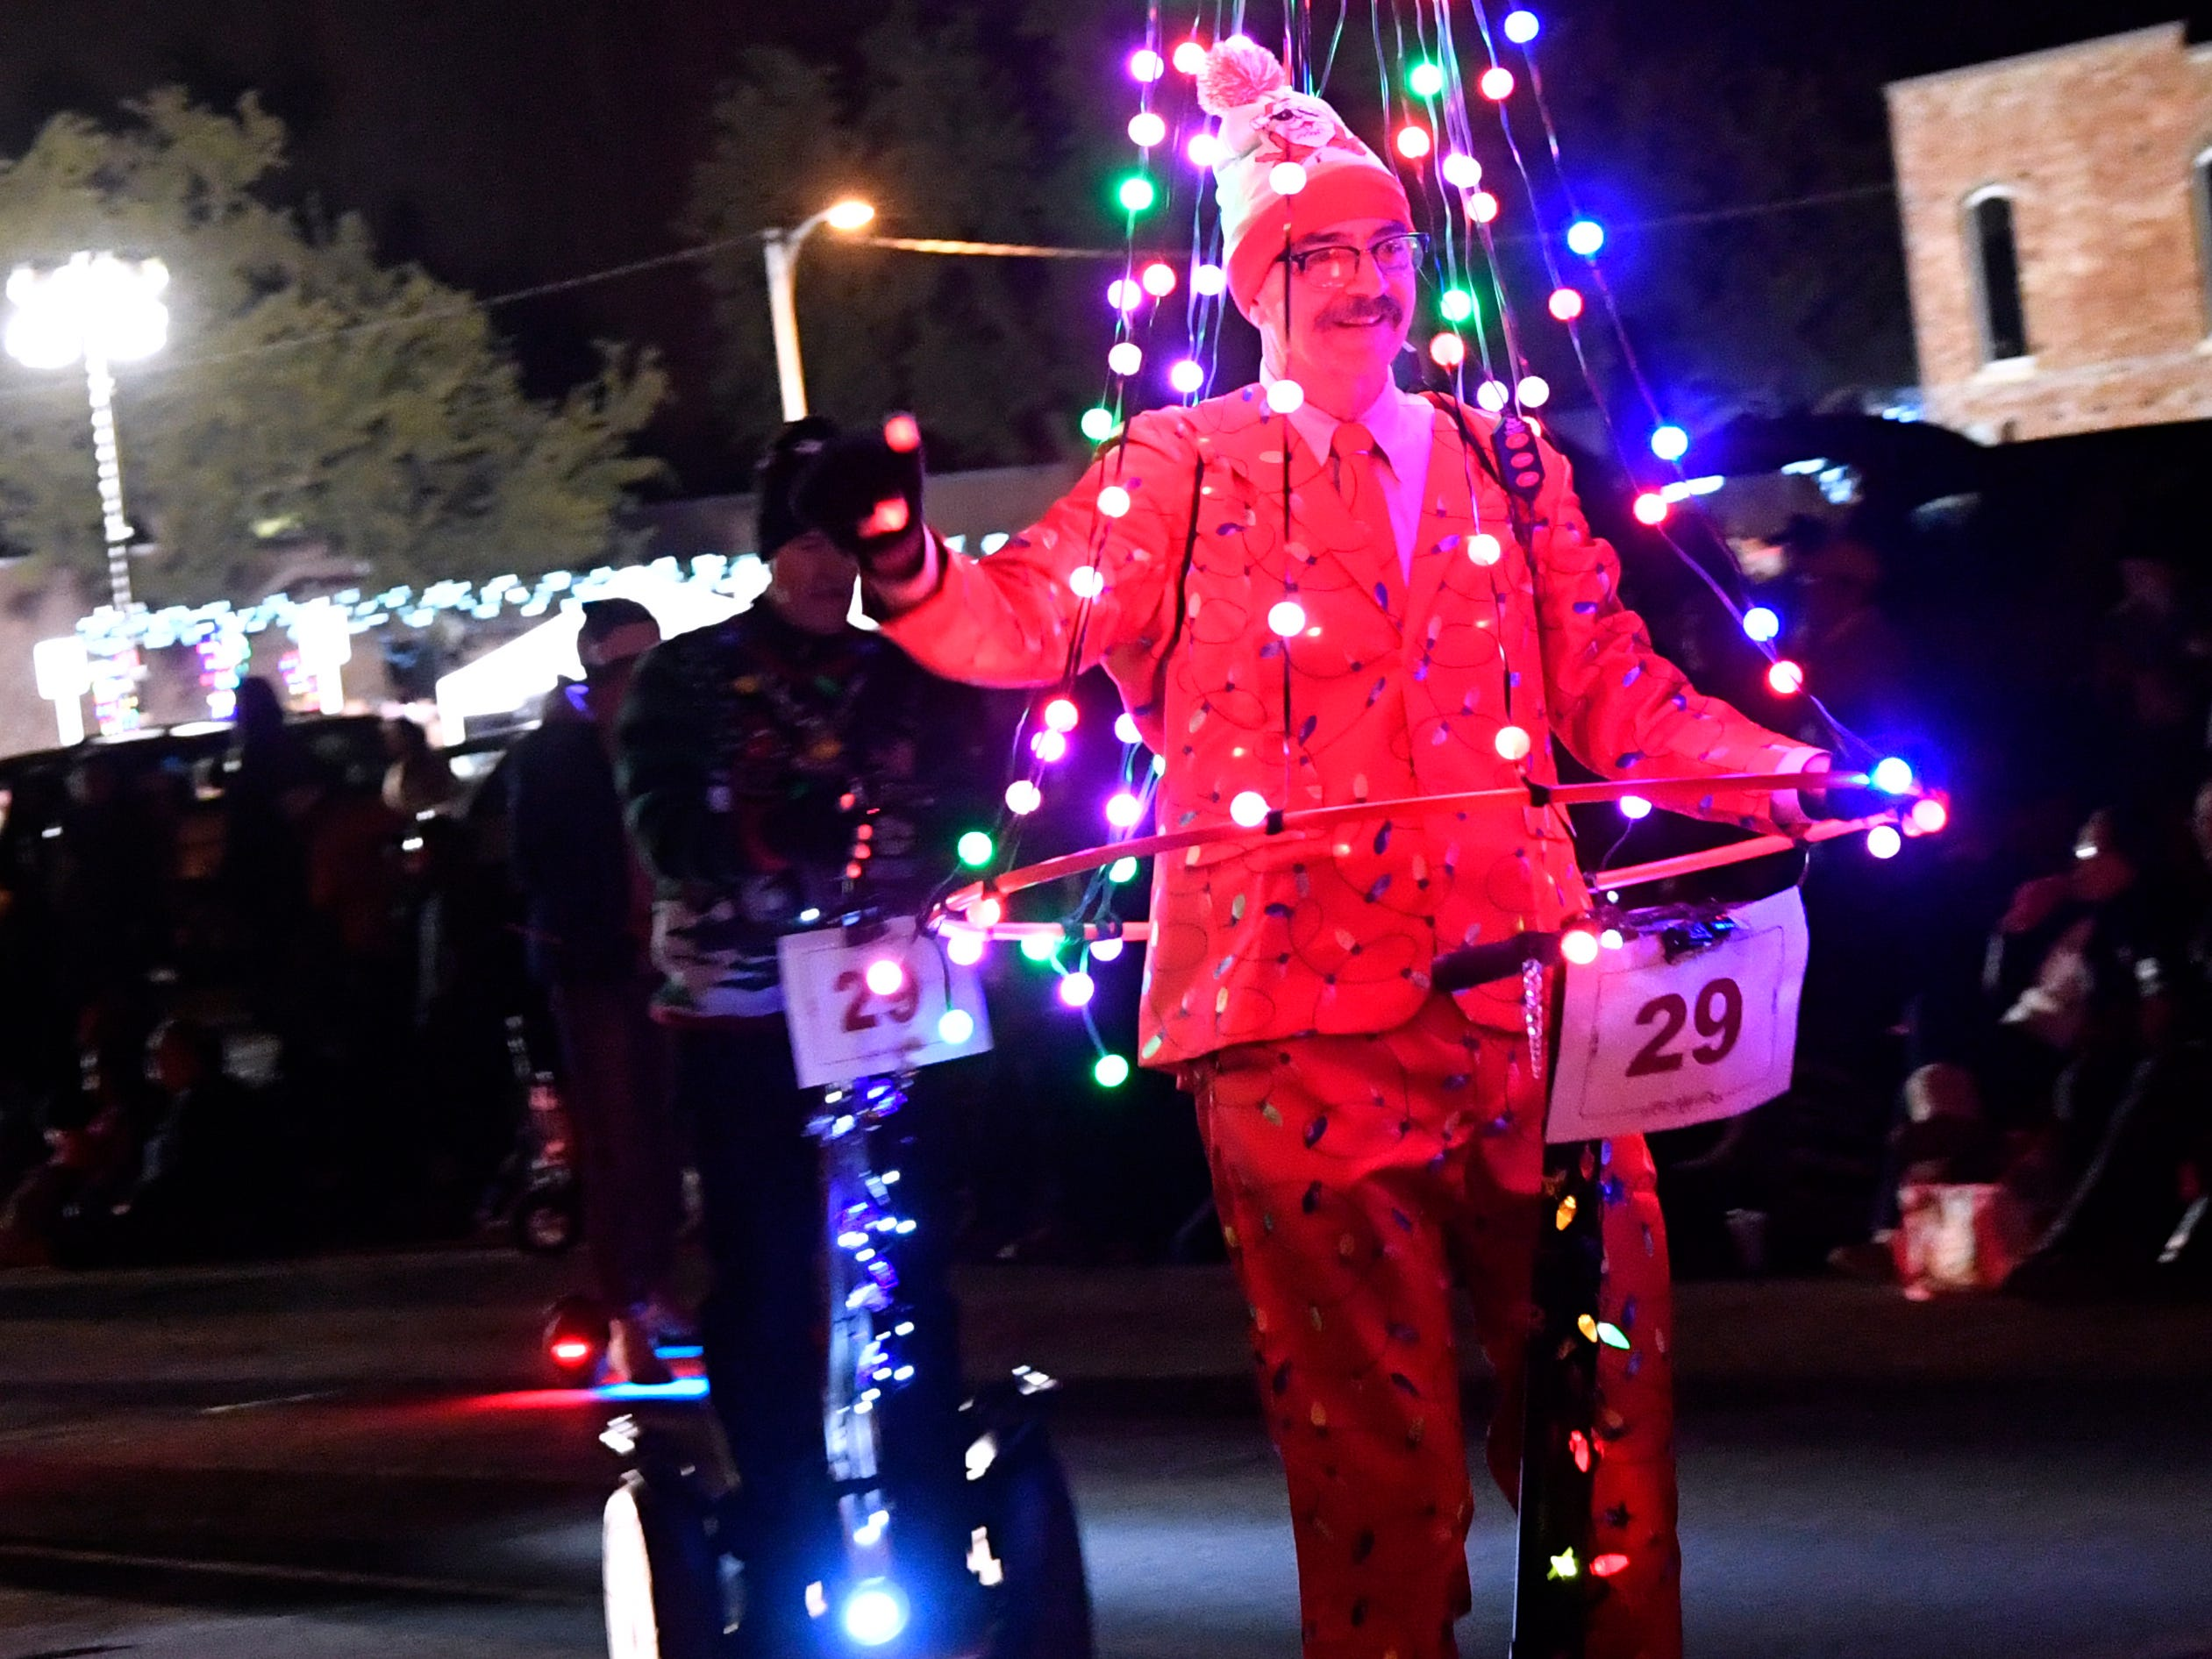 A Segway Christmas tree rolls down Cypress St. during Tuesday's parade Nov. 27, 2018. This was the 30th year for the City Sidewalks Christmas Lights Parade.